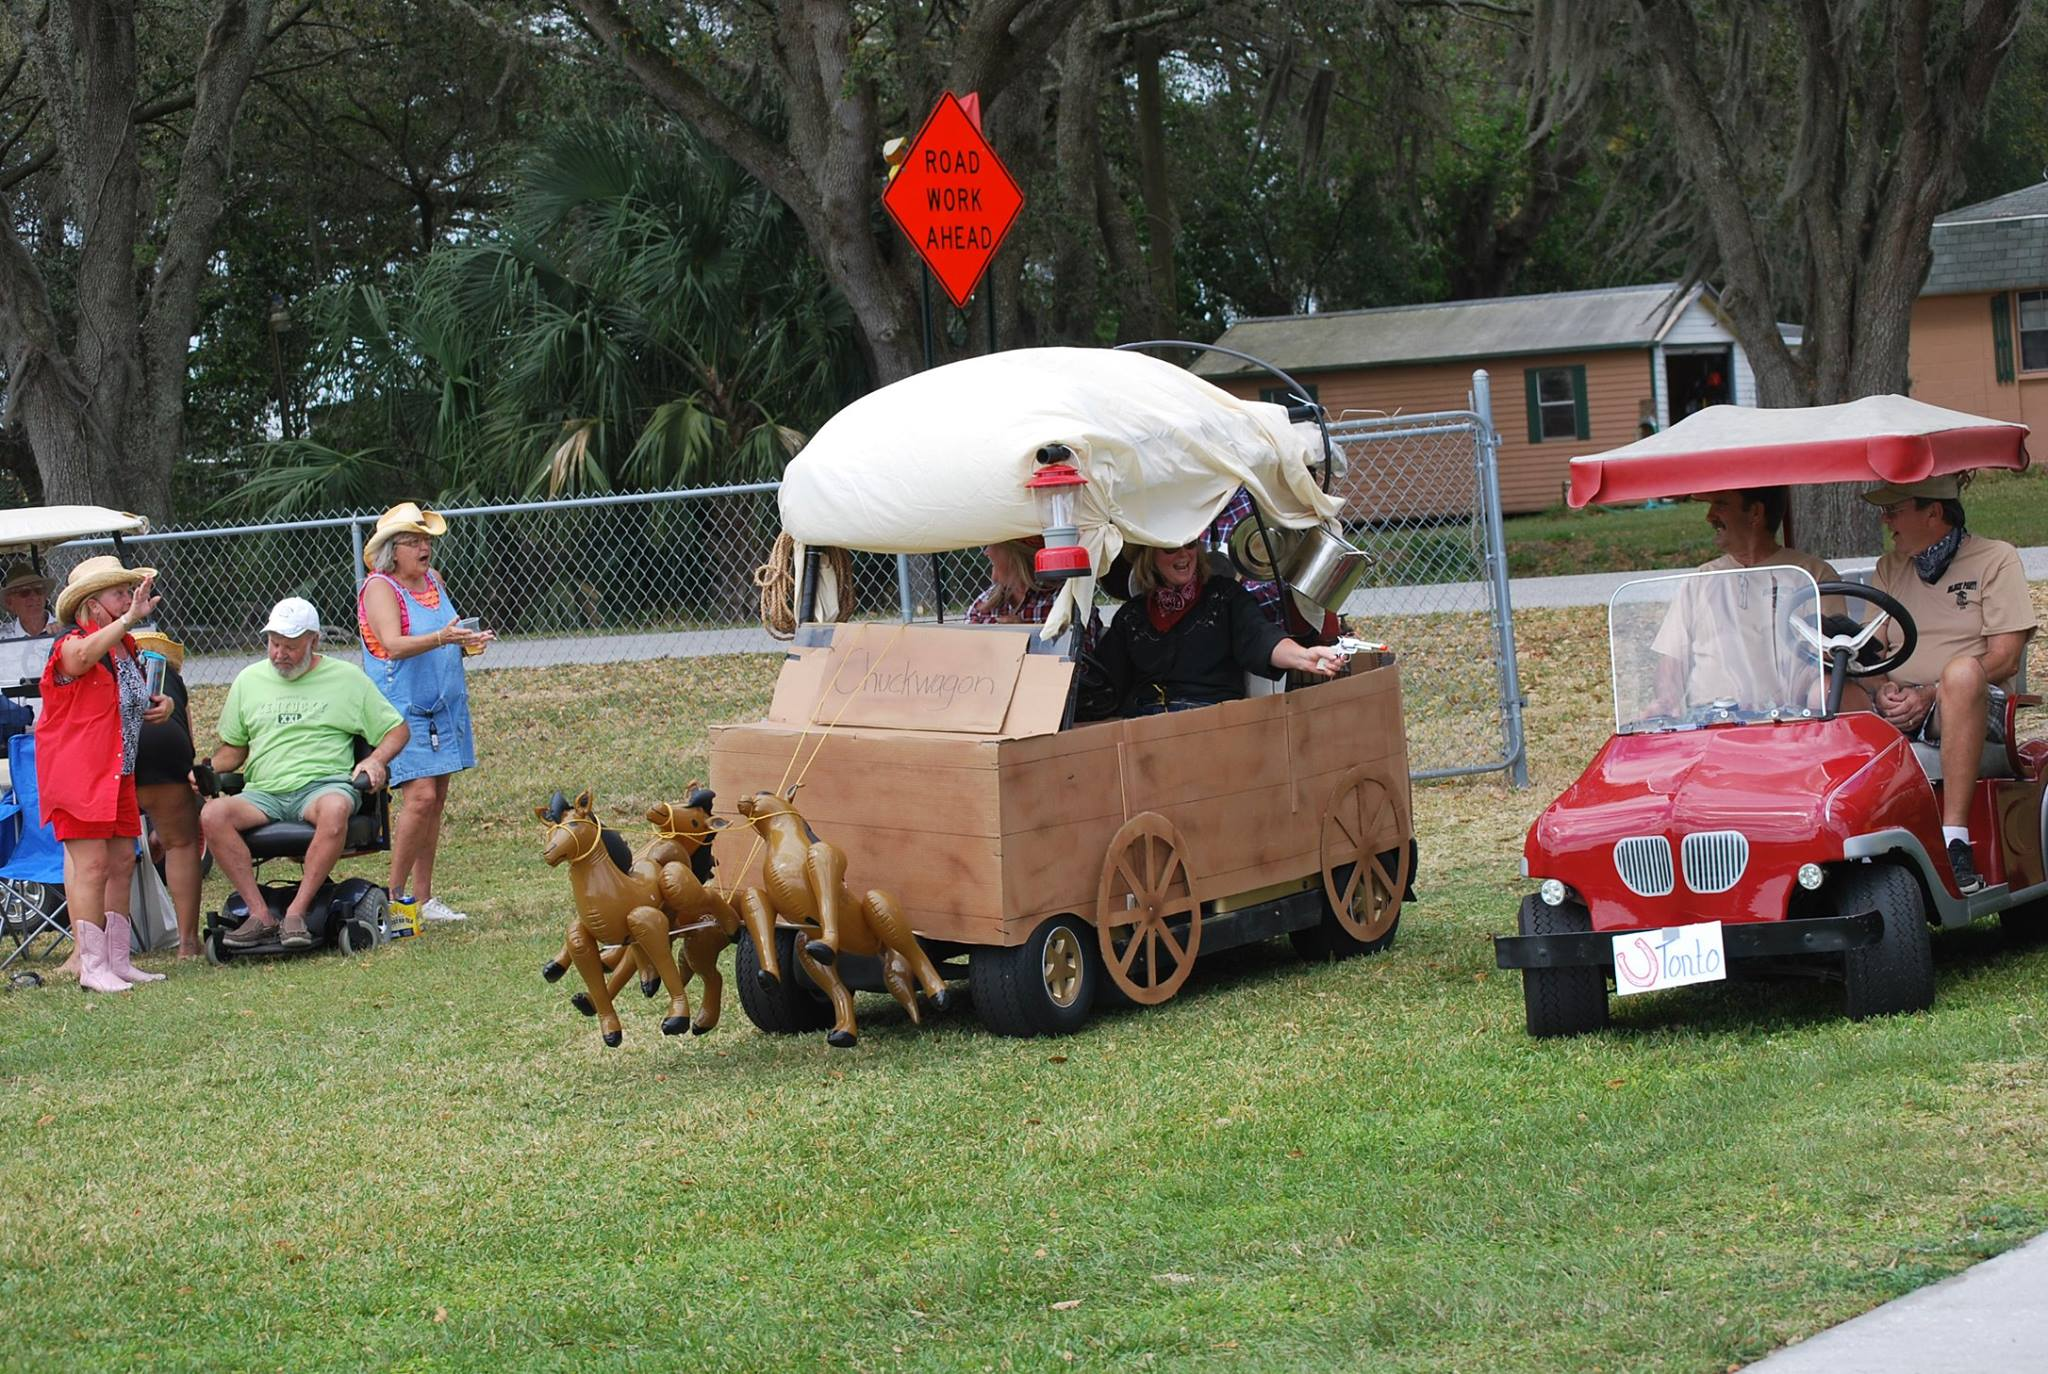 chuckwagon golf cart